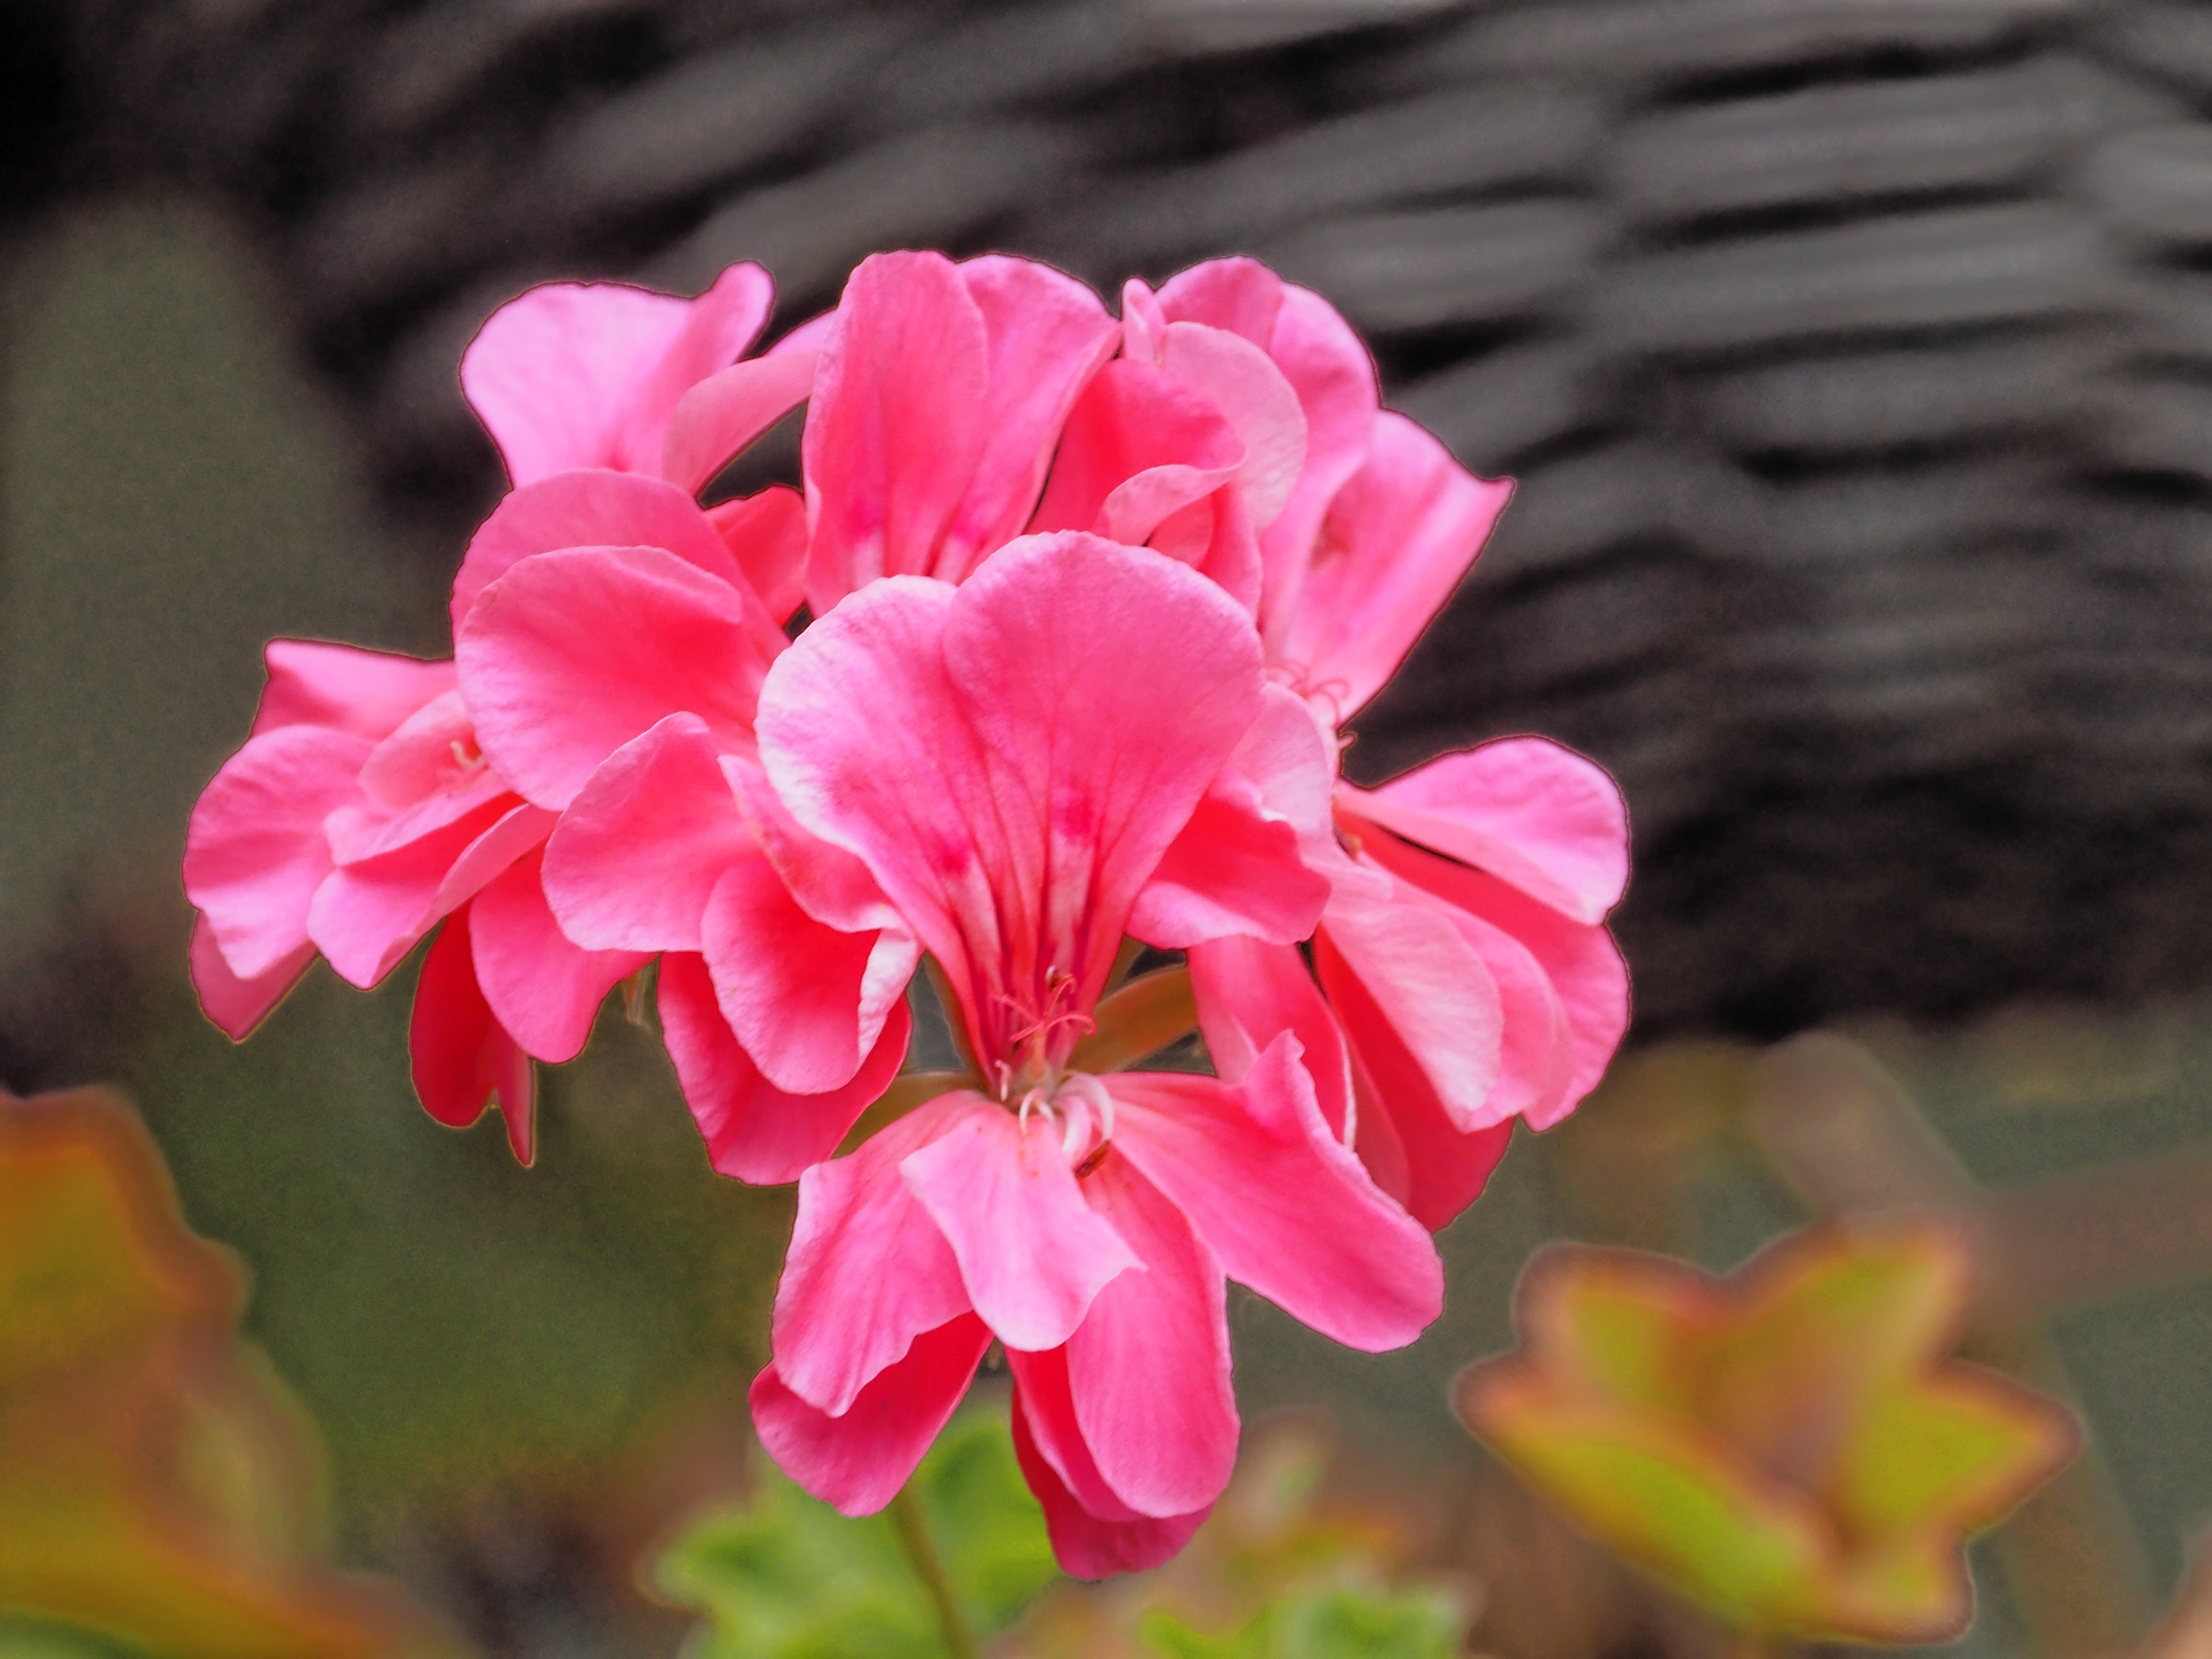 This should be Pelargonium-4.jpeg.  Is it missing?